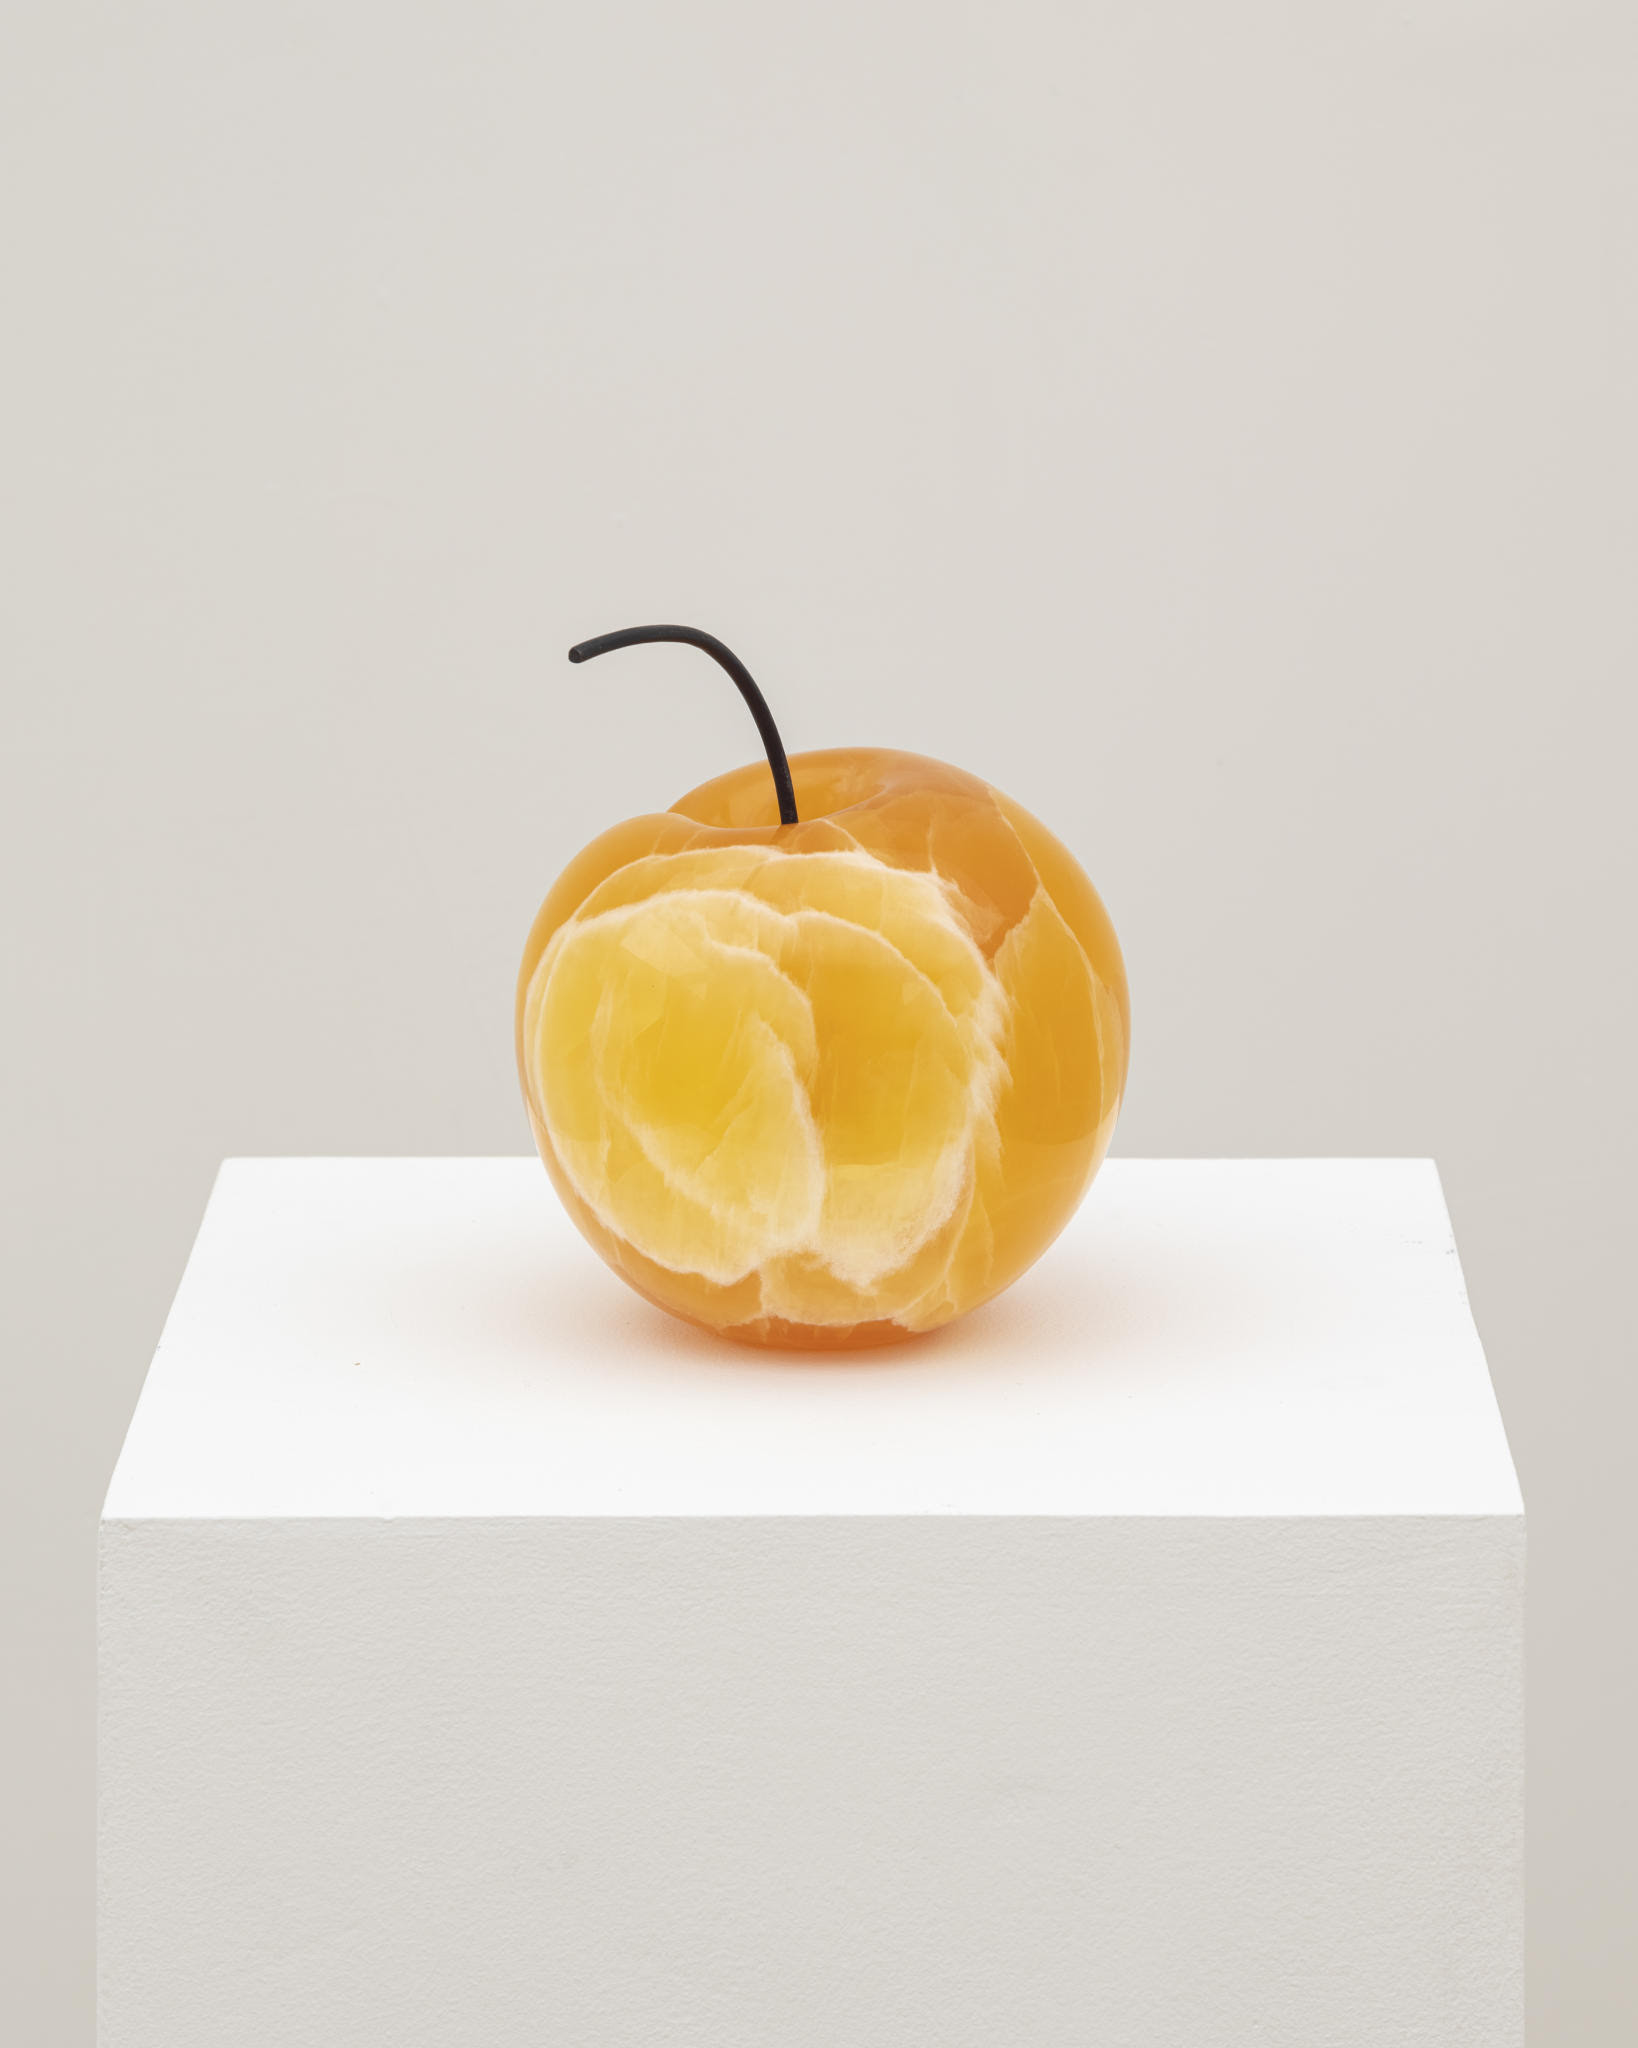 Nevine Mahmoud, Peach (made unnatural), 2019. Courtesy of the artist and M+B.